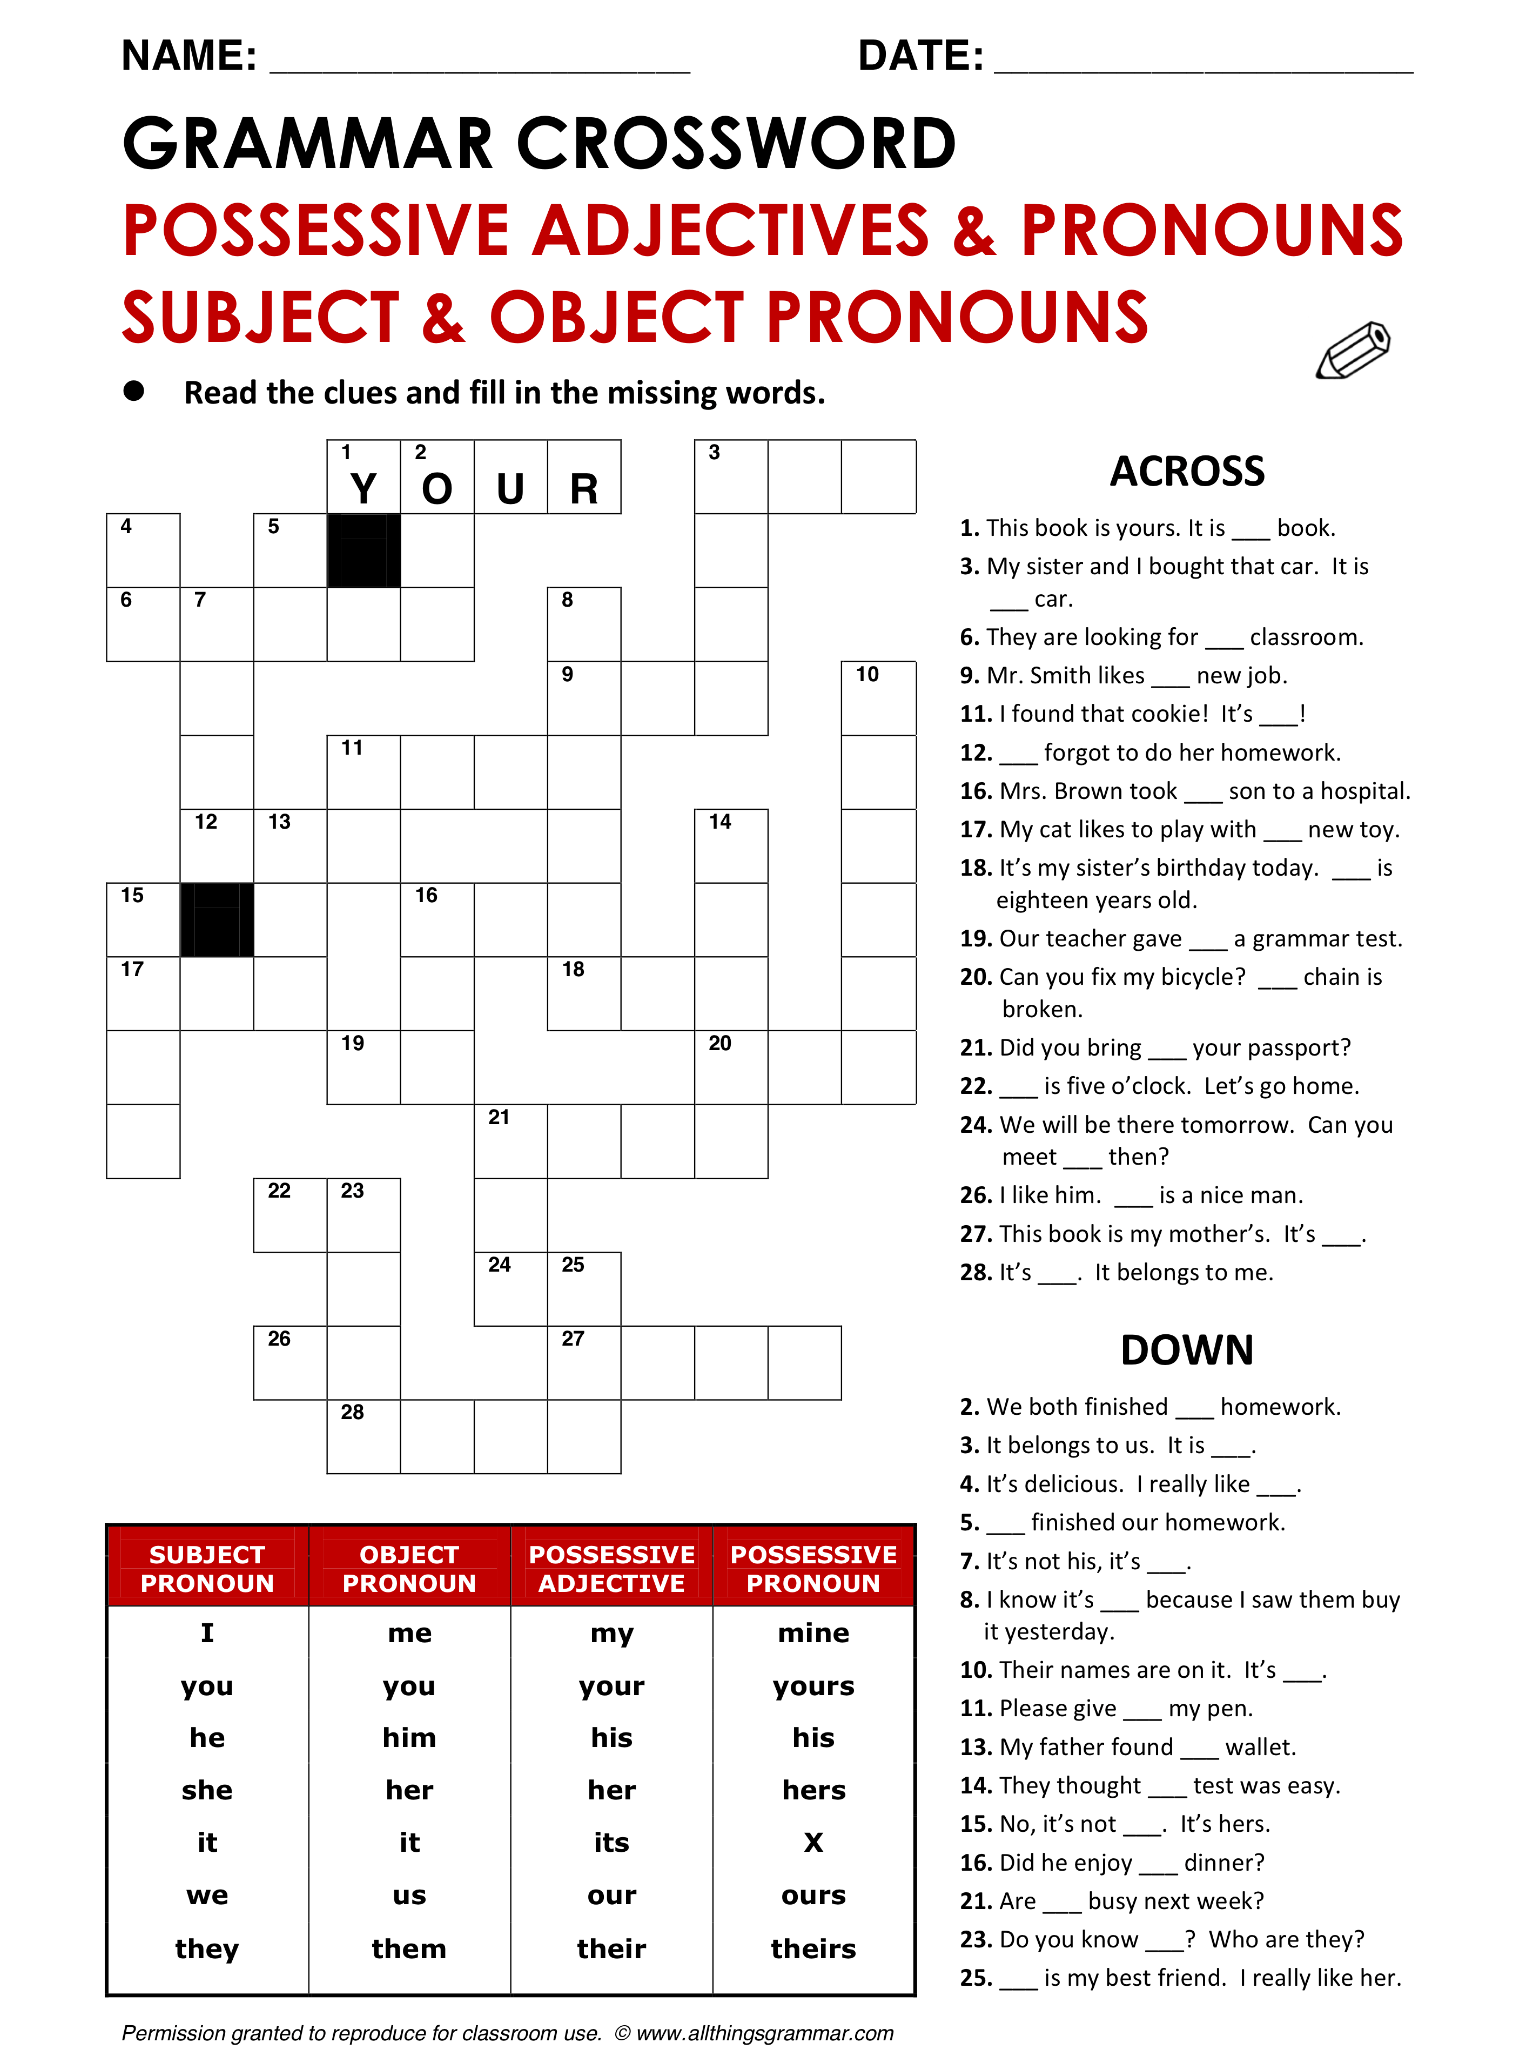 English Grammar Possessive Adjectives Amp Pronouns Subject